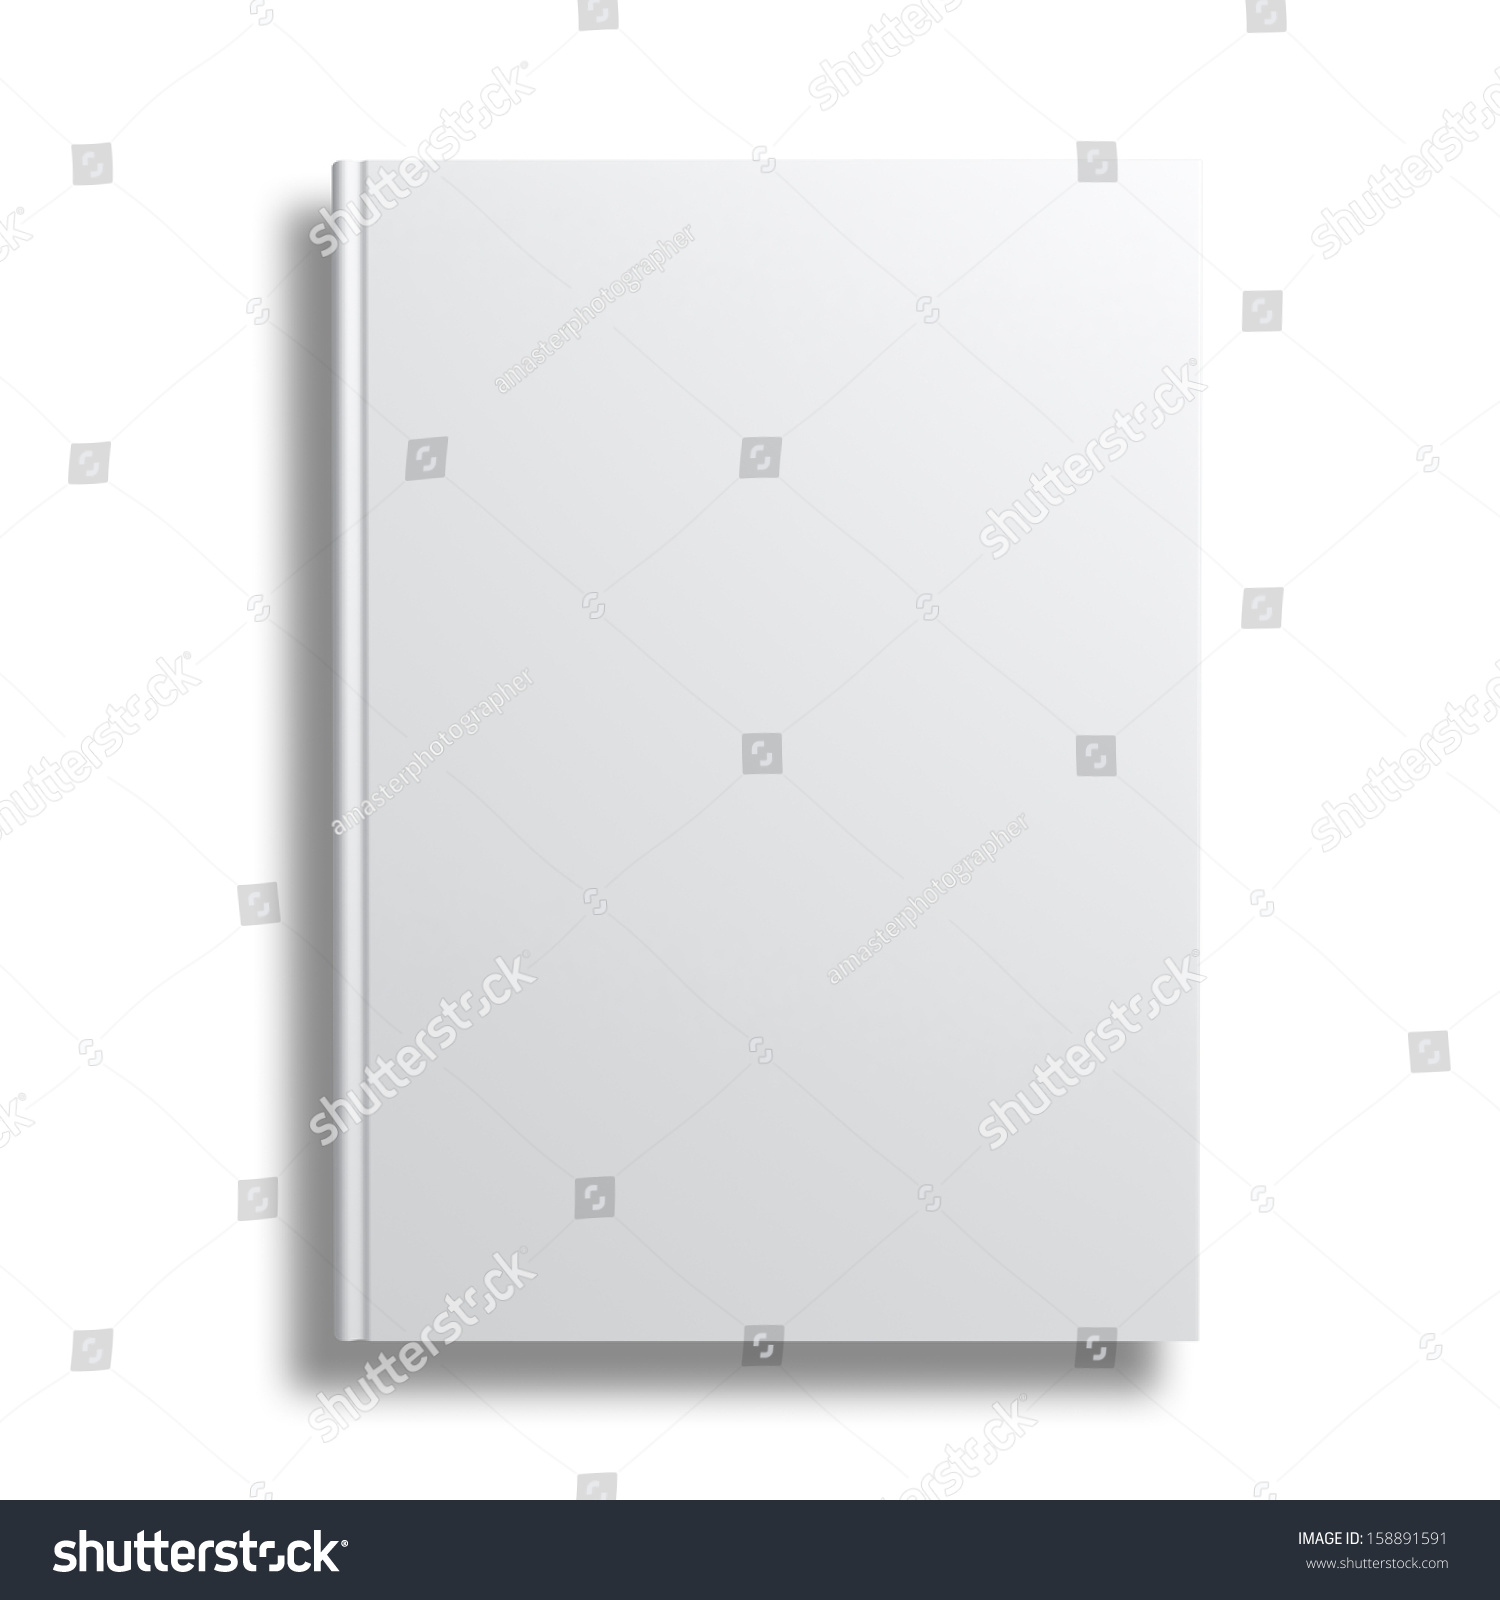 Book Cover White Background : Blank book cover isolated over white stock illustration